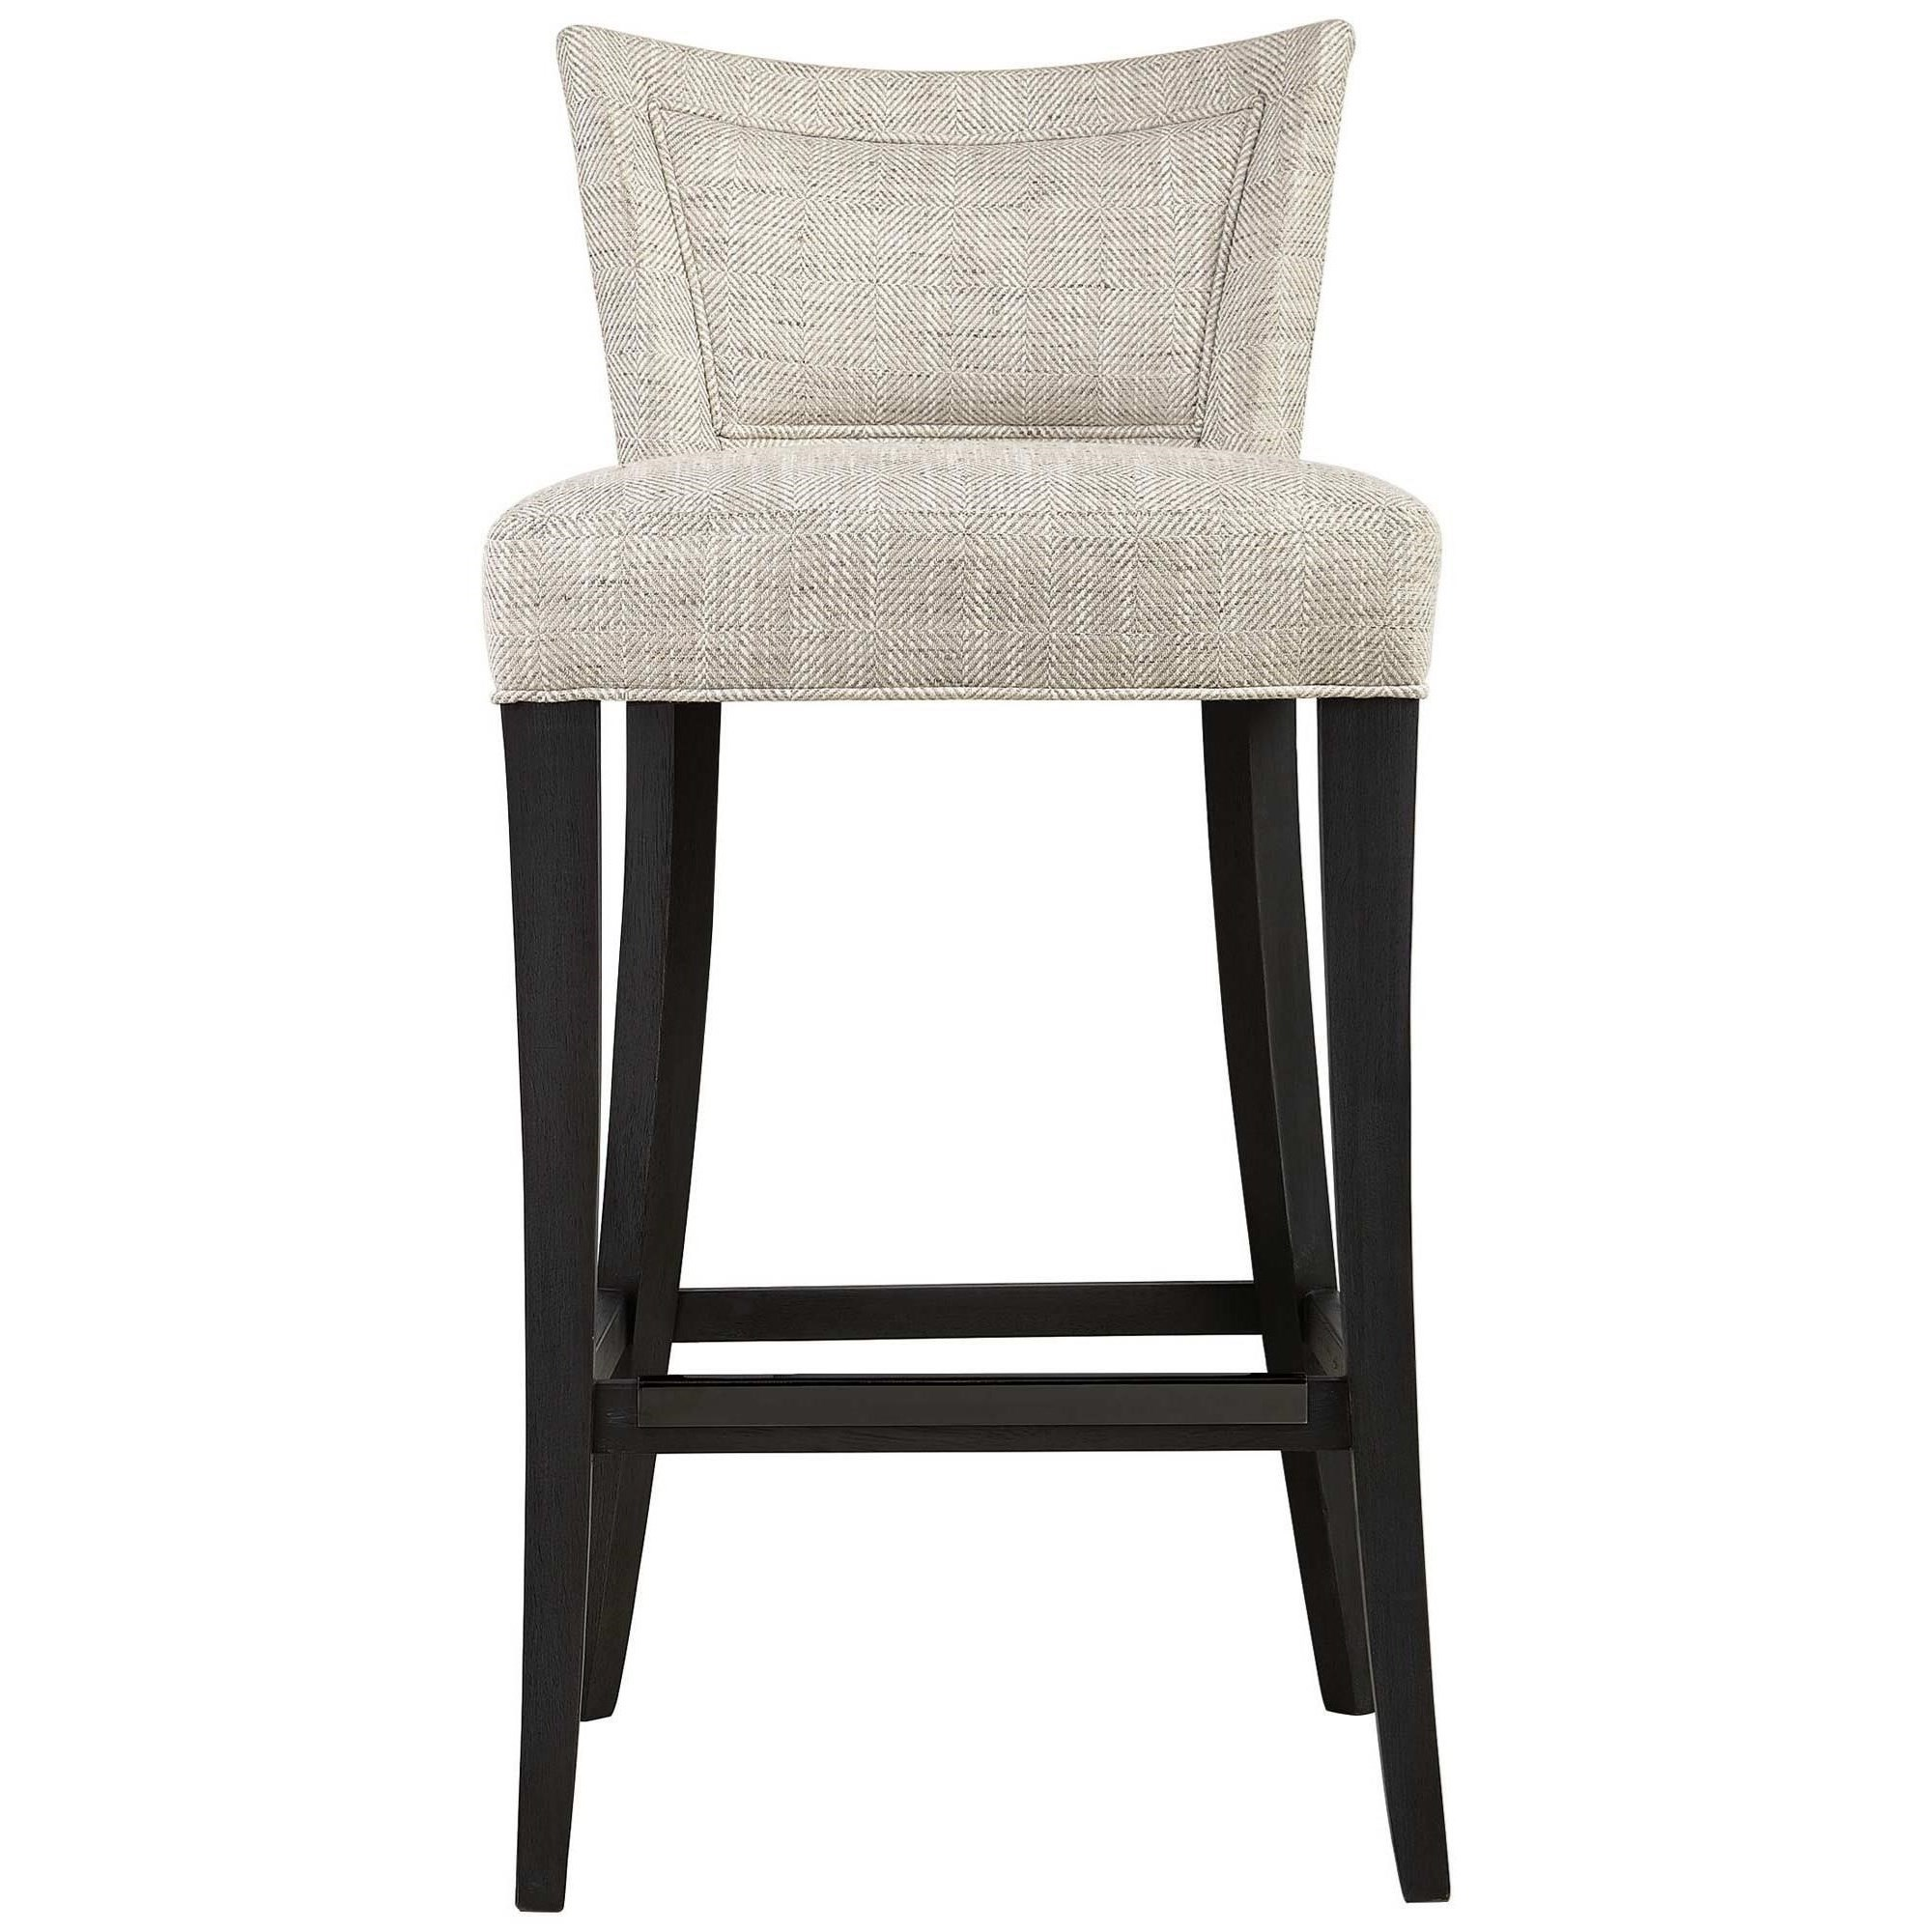 Interiors - Giles Bar Stool by Bernhardt at Esprit Decor Home Furnishings